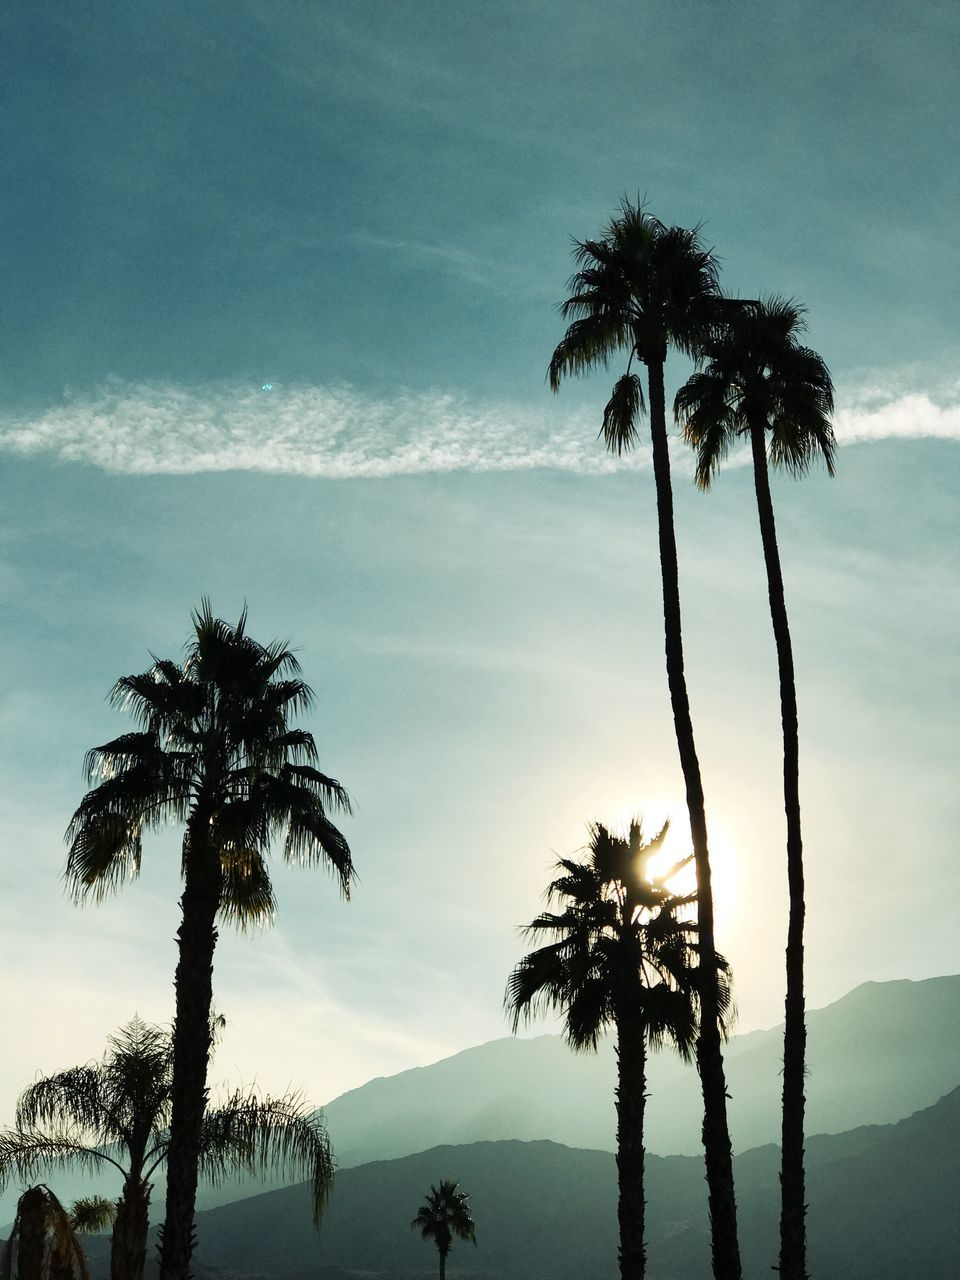 palm tree, tree, beauty in nature, scenics, tree trunk, tranquil scene, nature, tranquility, sky, growth, silhouette, outdoors, mountain, cloud - sky, no people, sunset, day